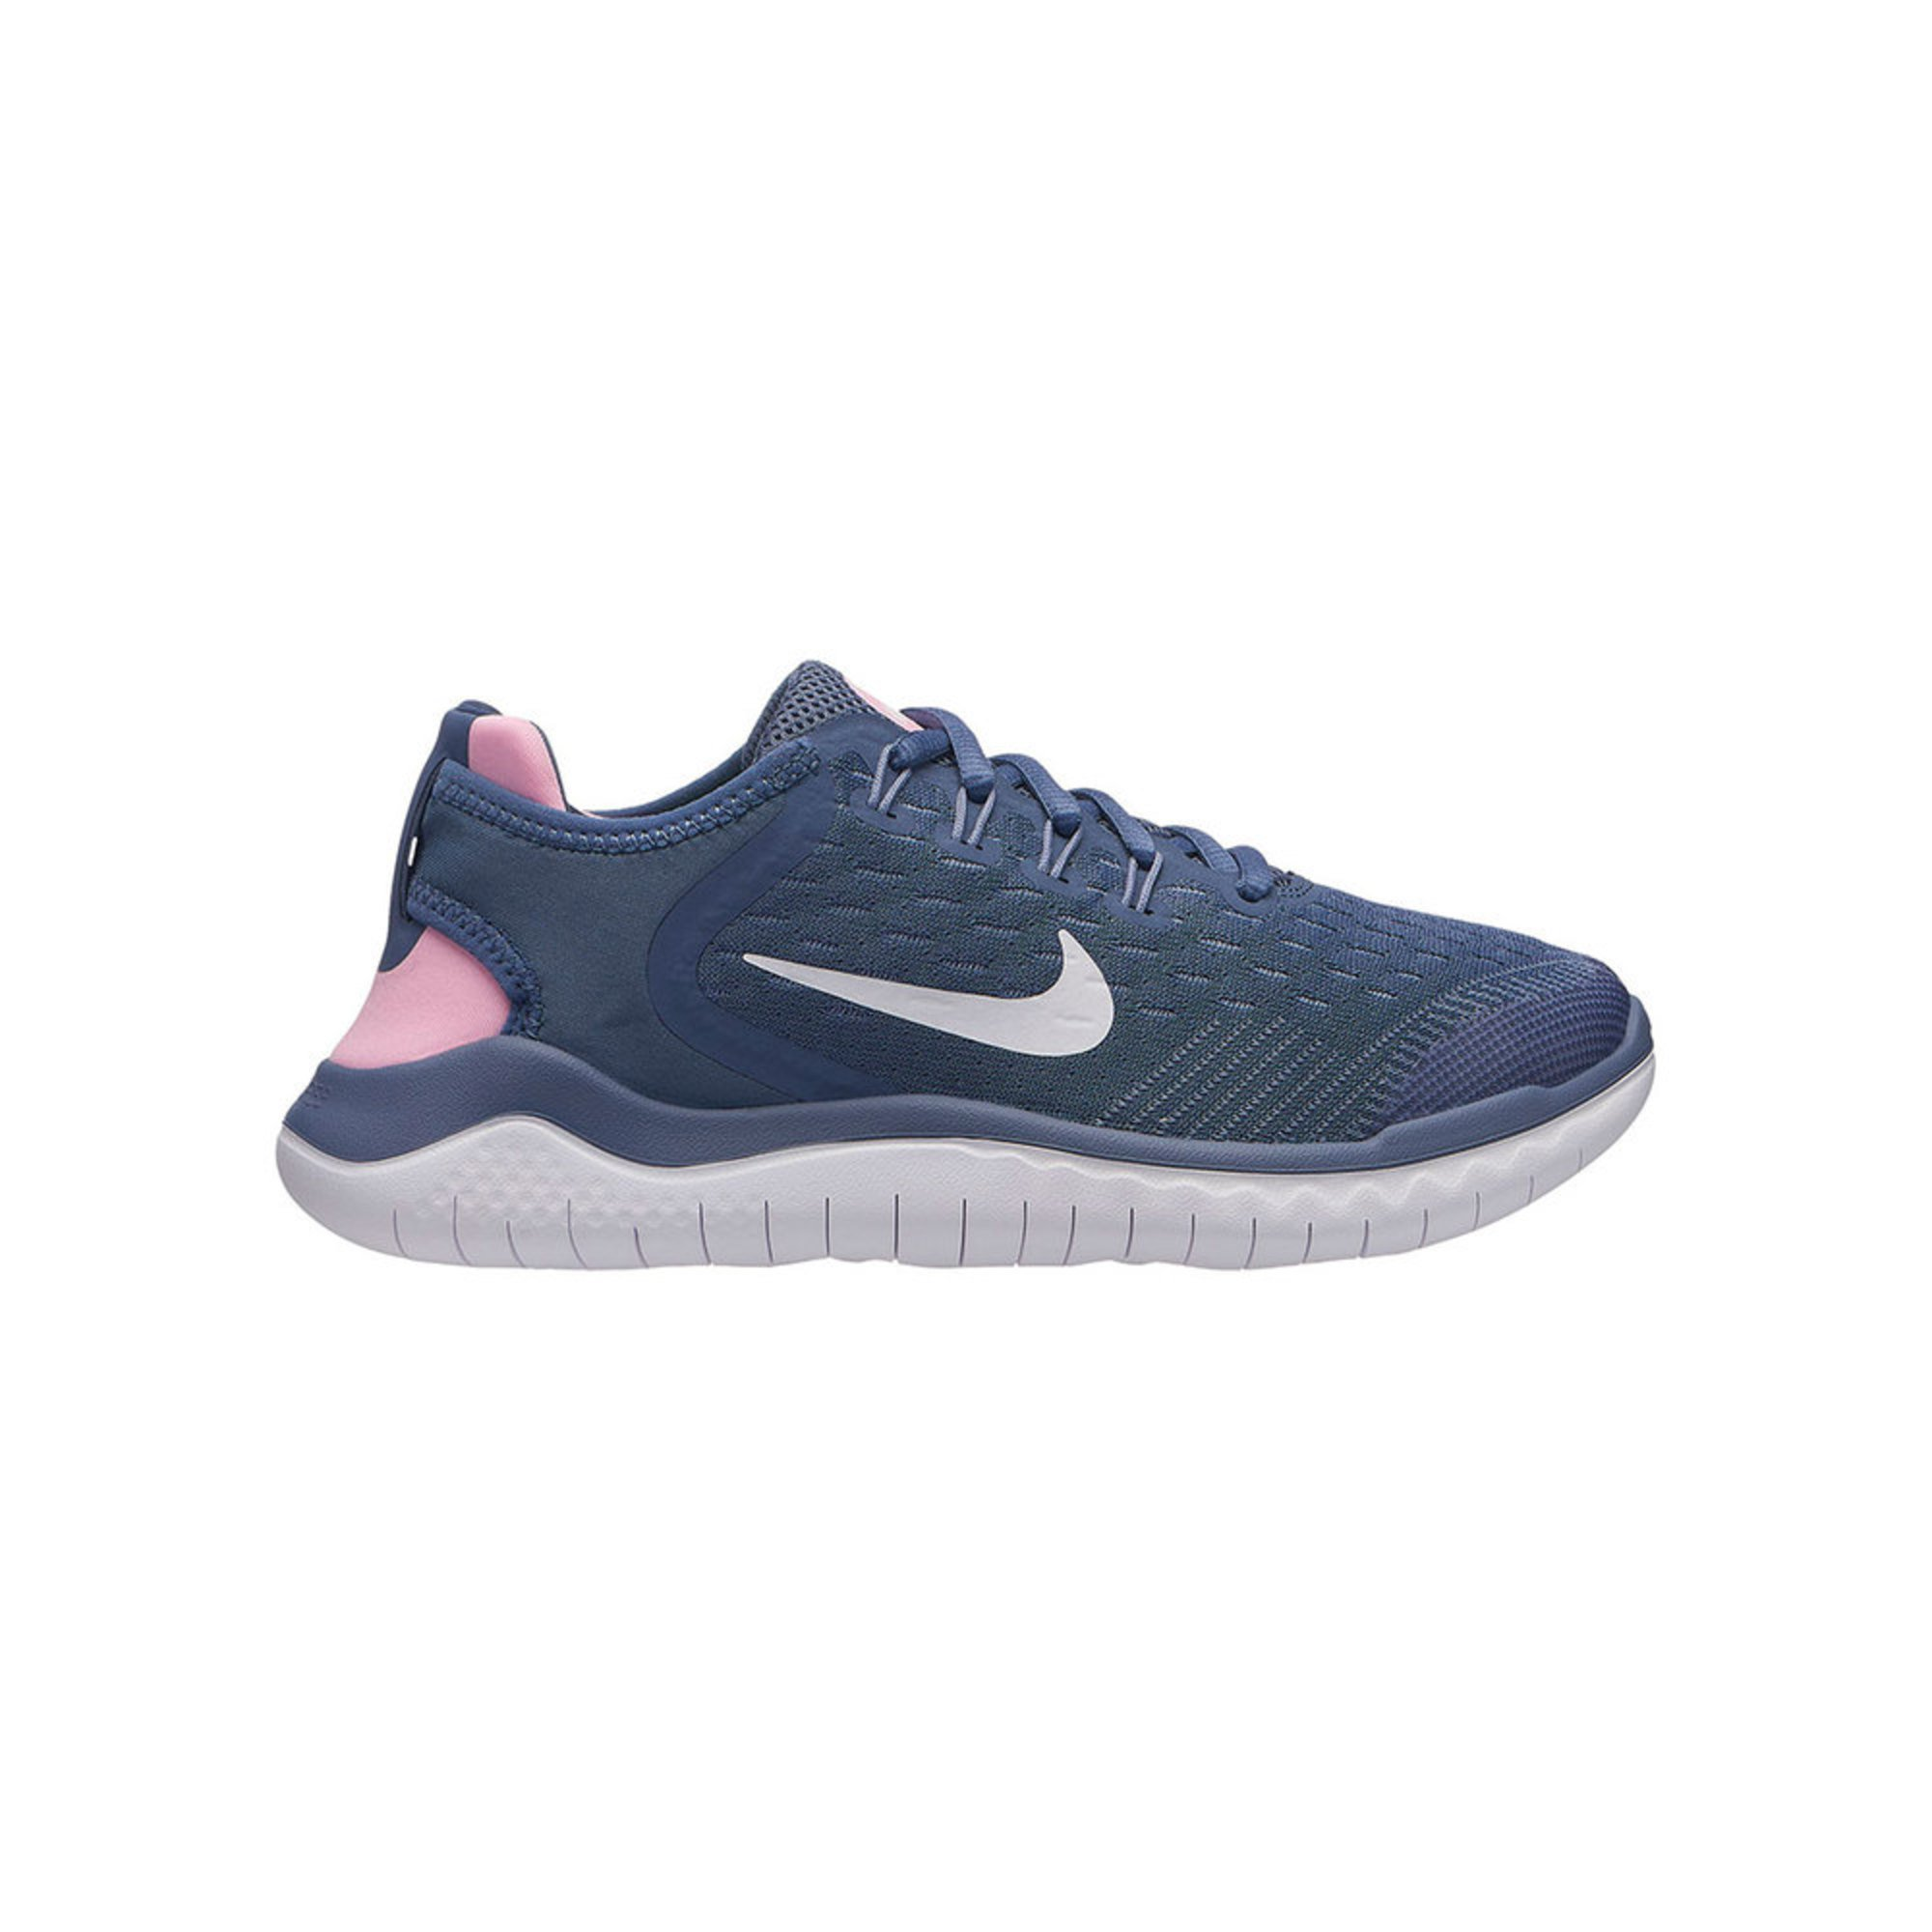 3ddf4f16115c Nike Girls Free Rn Running Shoe (youth)